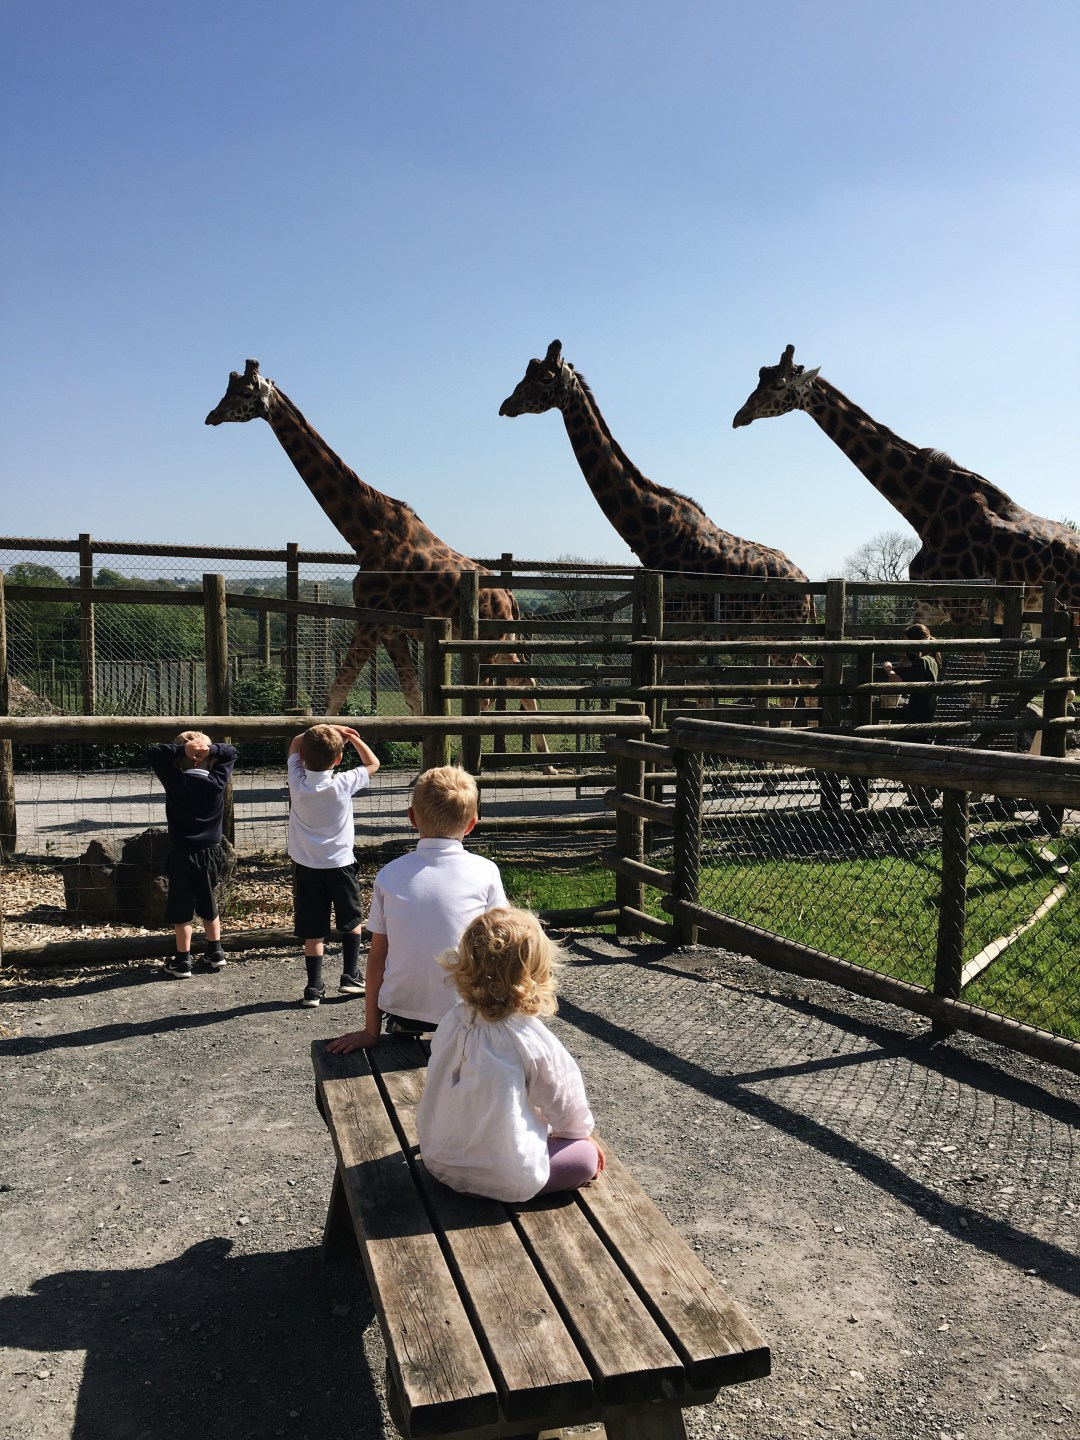 Children watching giraffes at Folly Farm